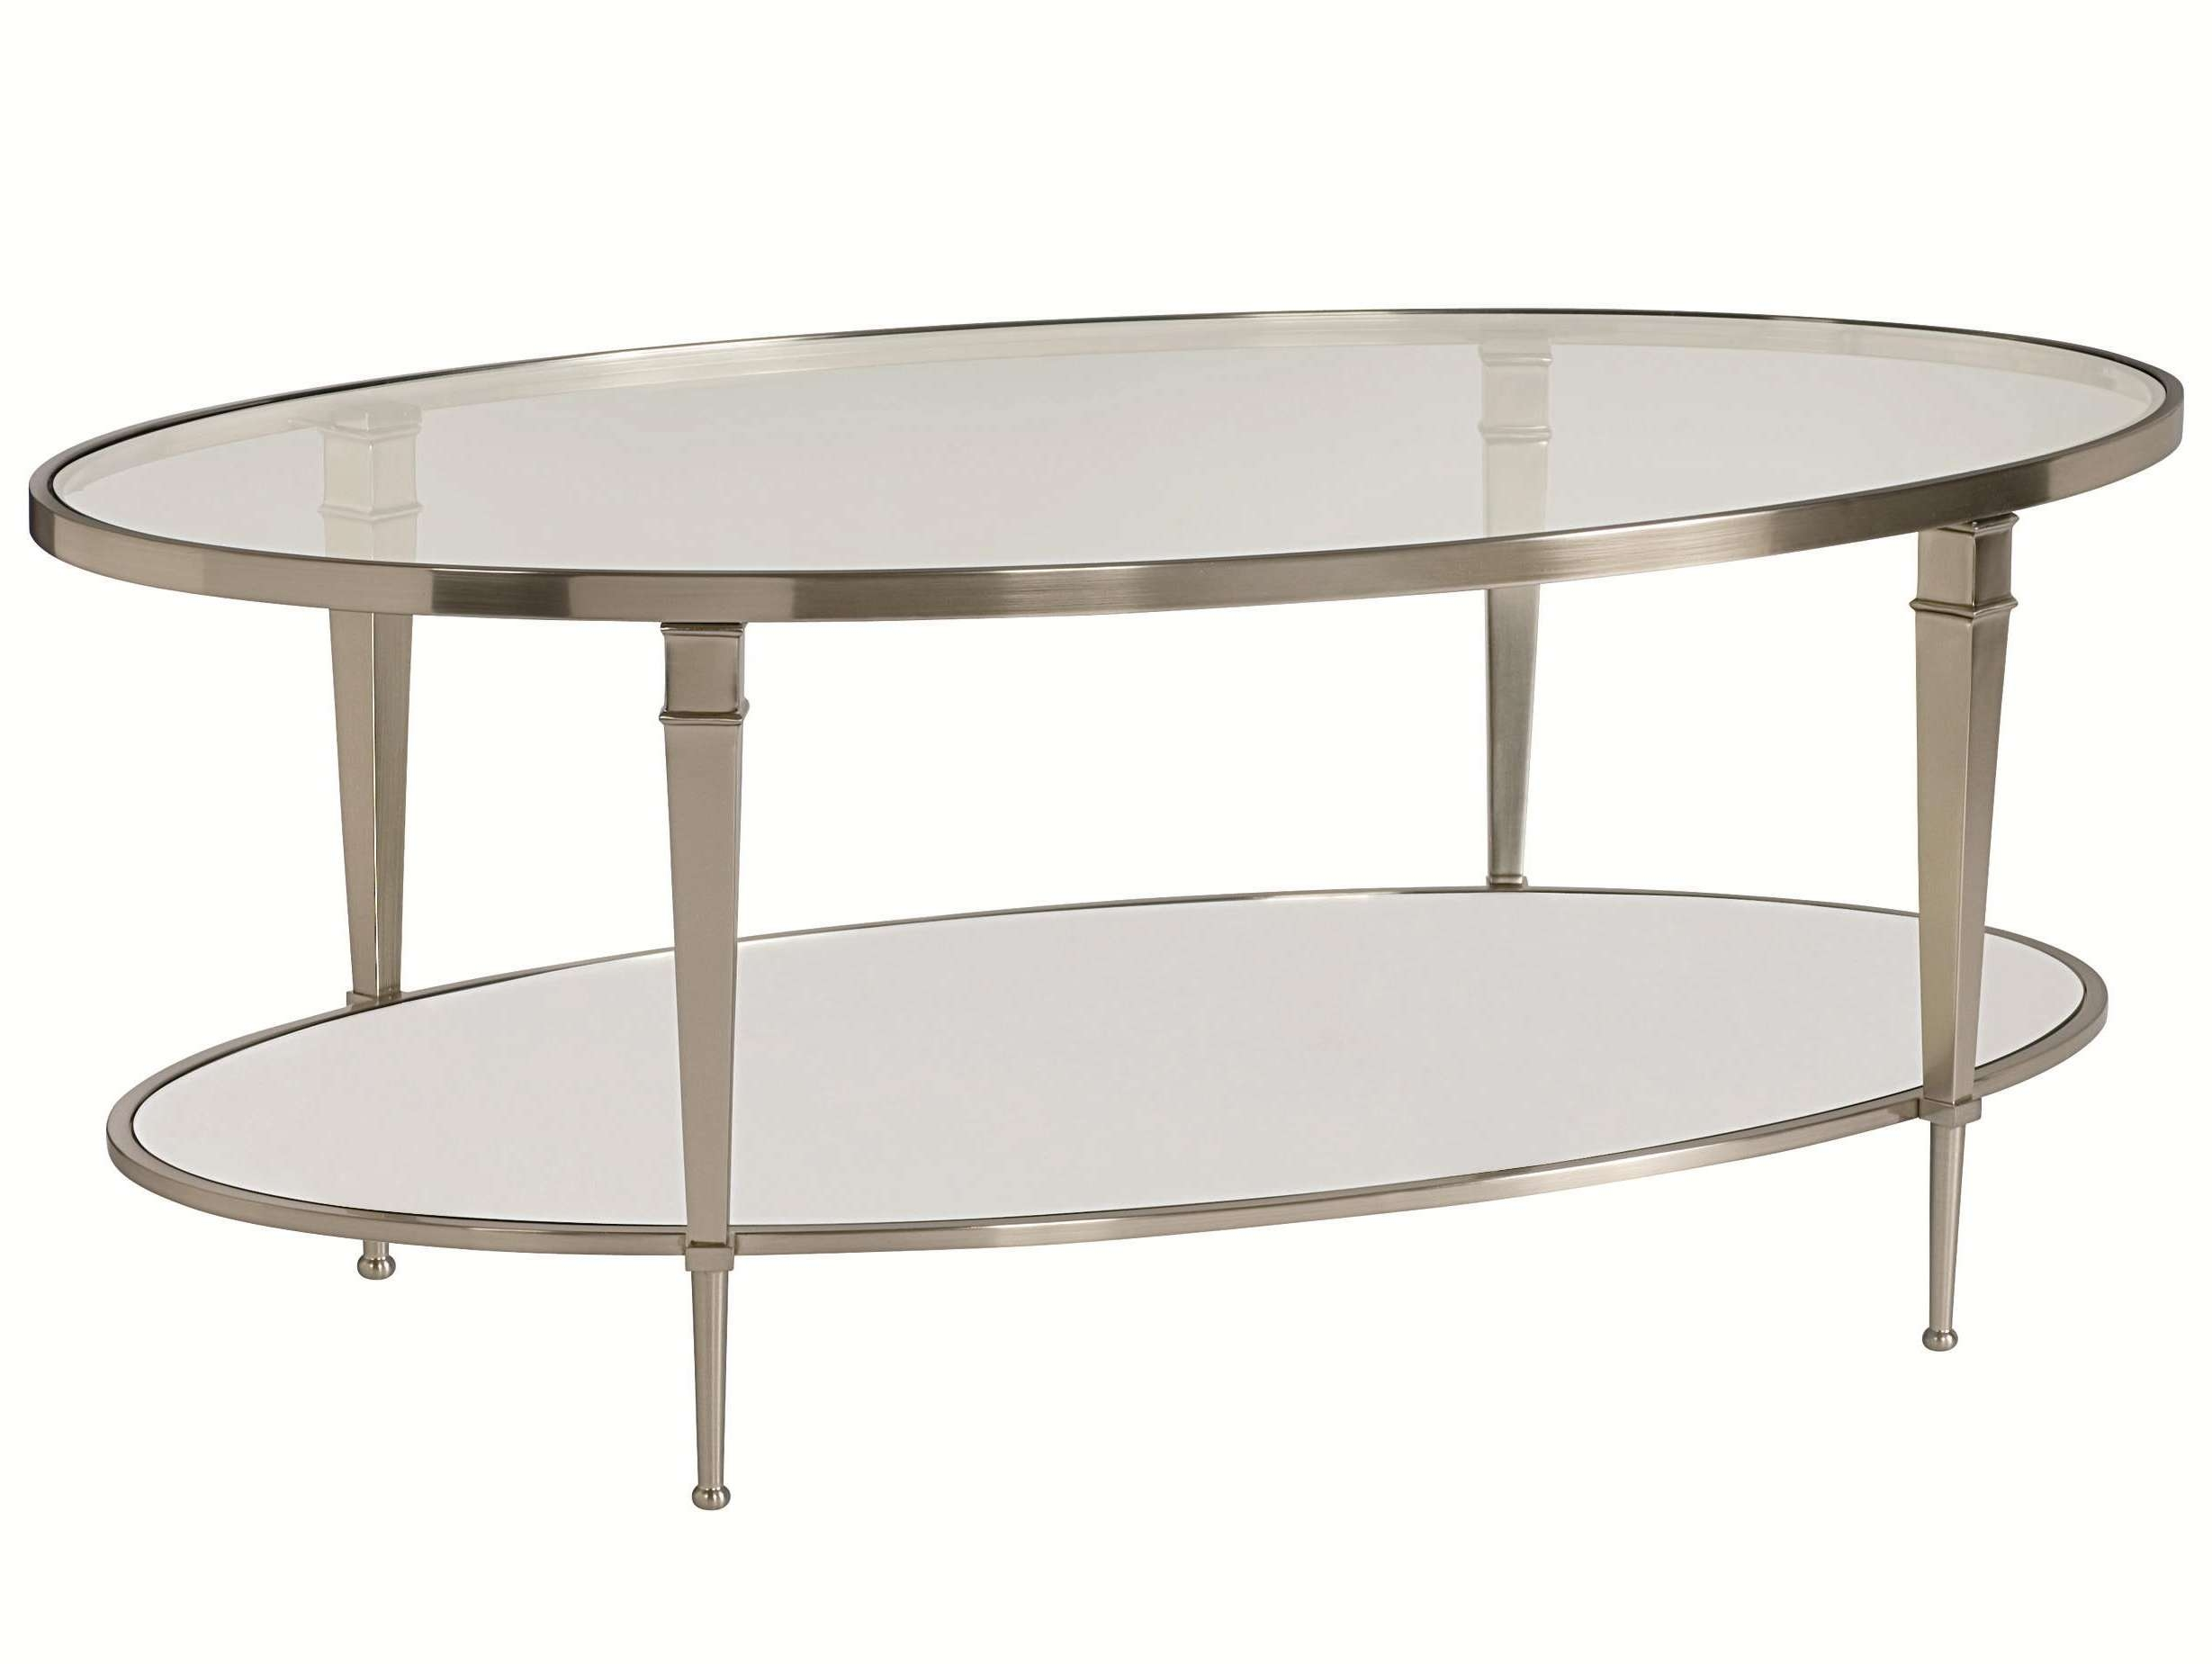 Oval Satin Nickel Antique Mirror Finish Cocktail Tablehammary In Trendy Antique Mirrored Coffee Tables (View 17 of 20)